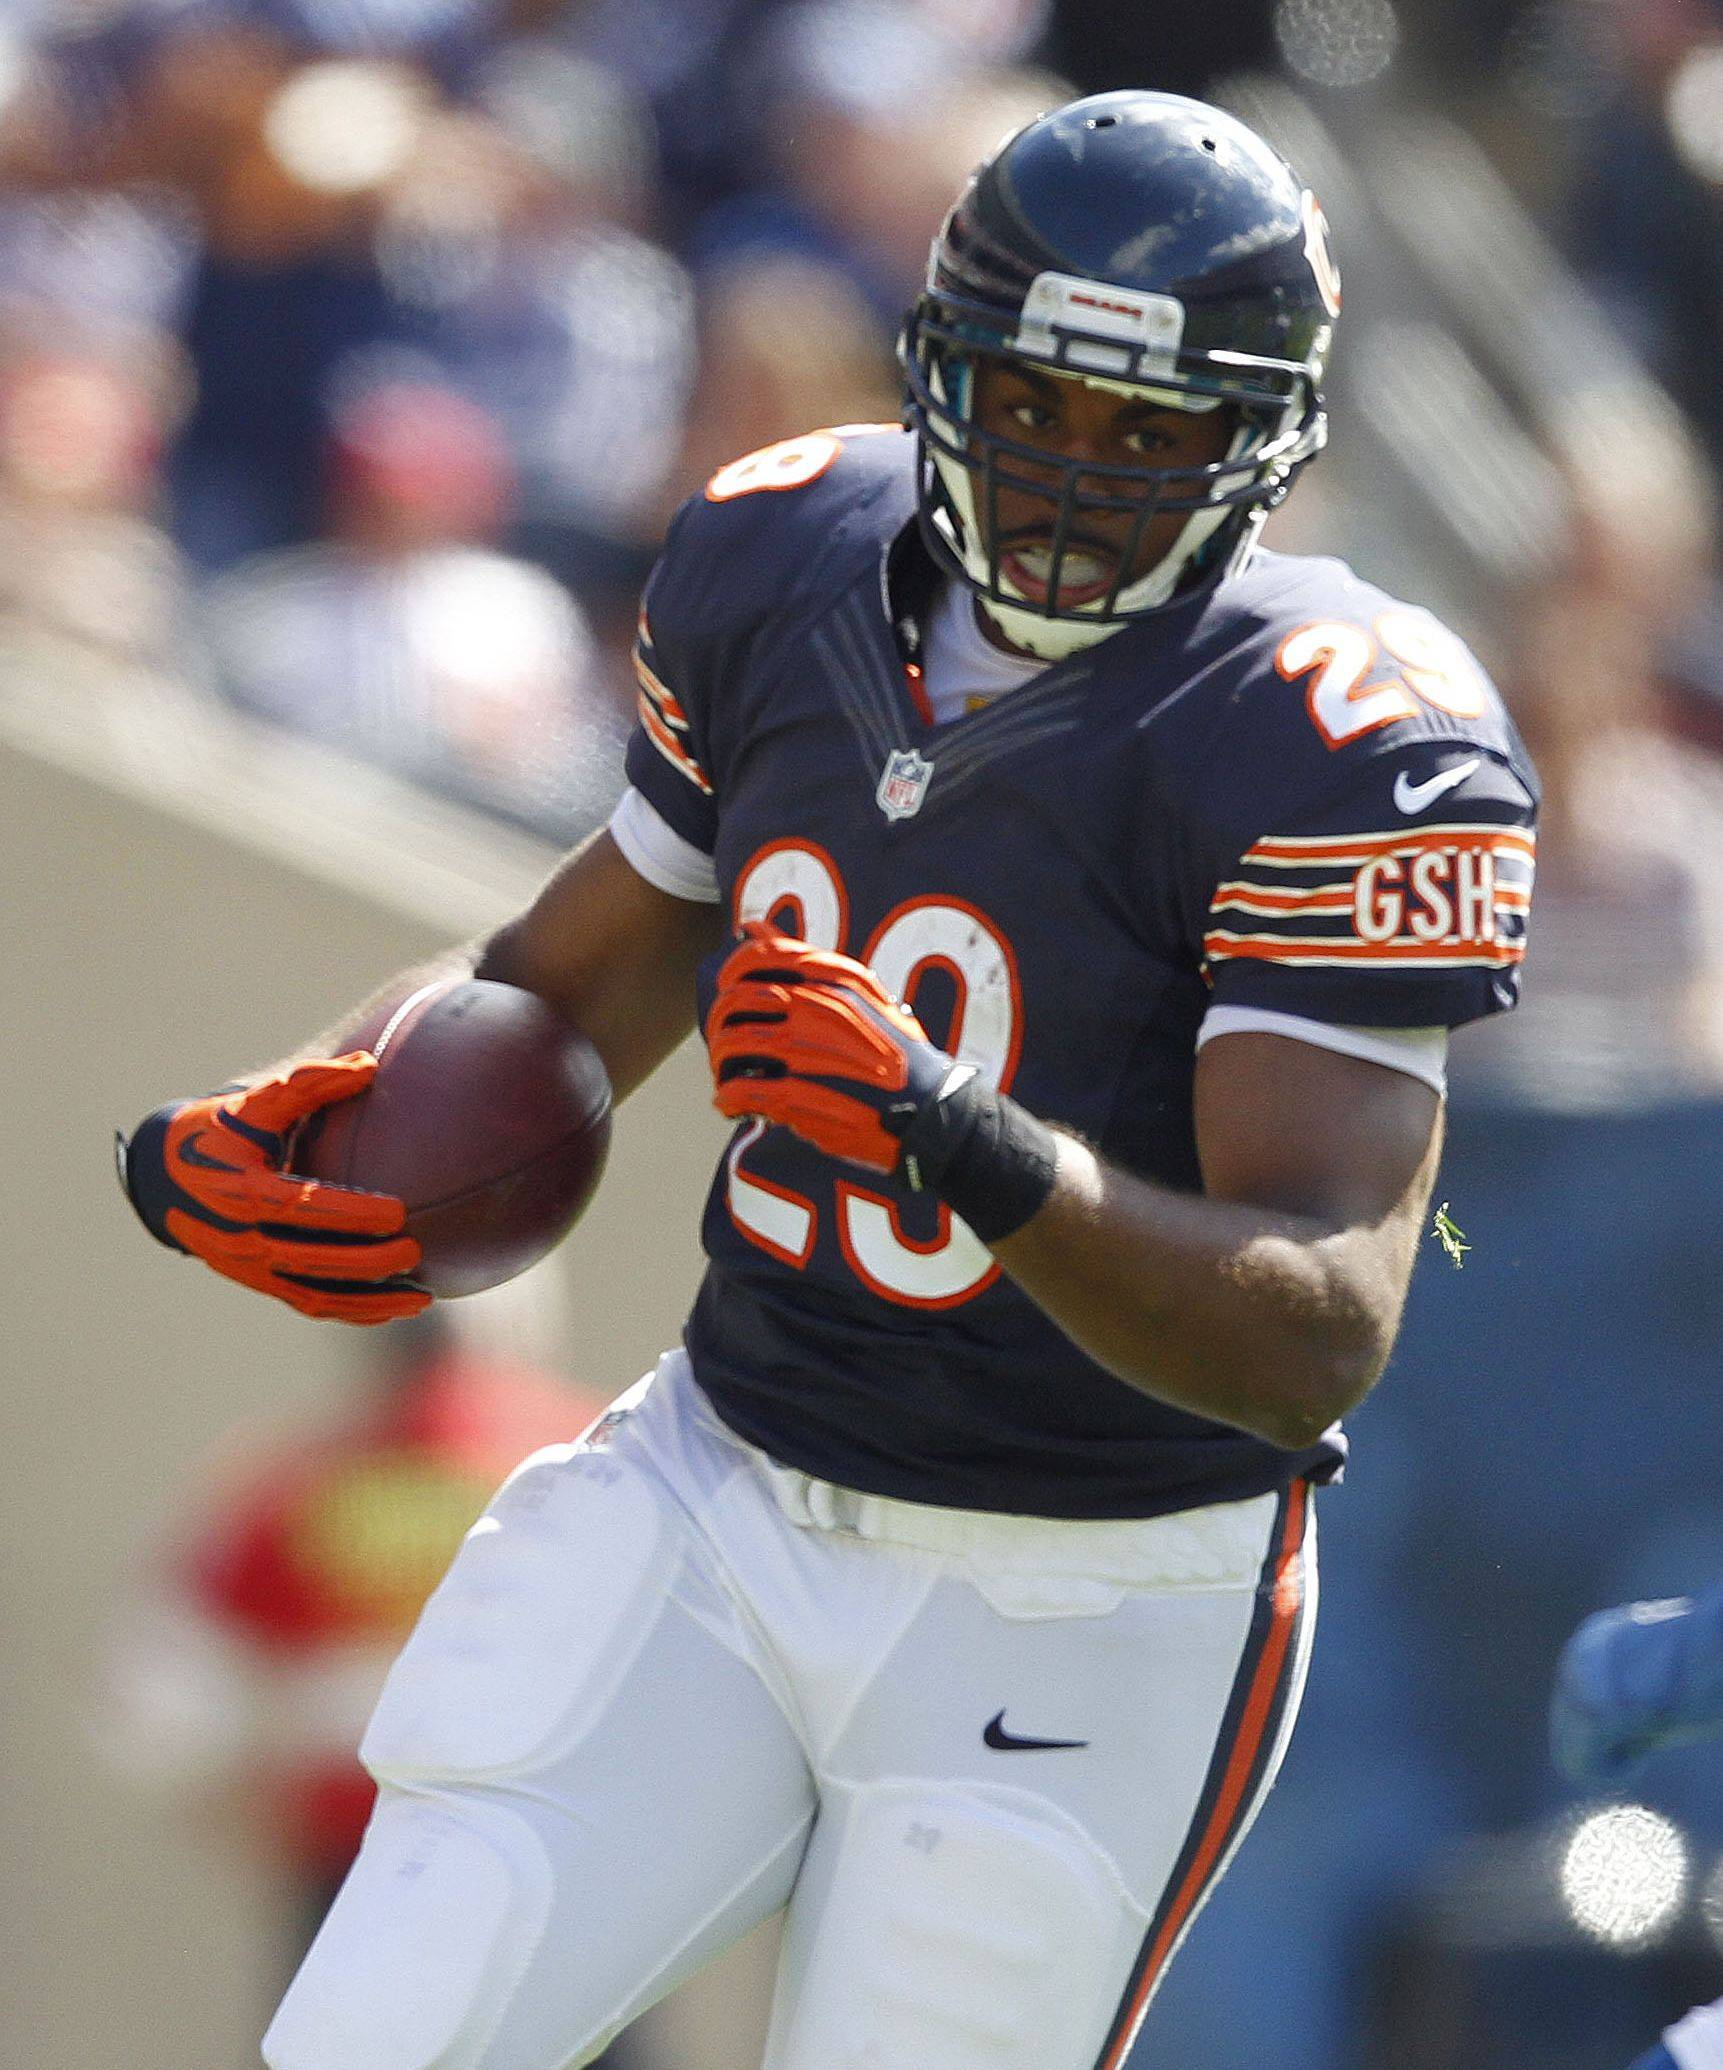 Michael Bush is the featured running back for the Bears today since Matt Forte is sidelined with an injury.